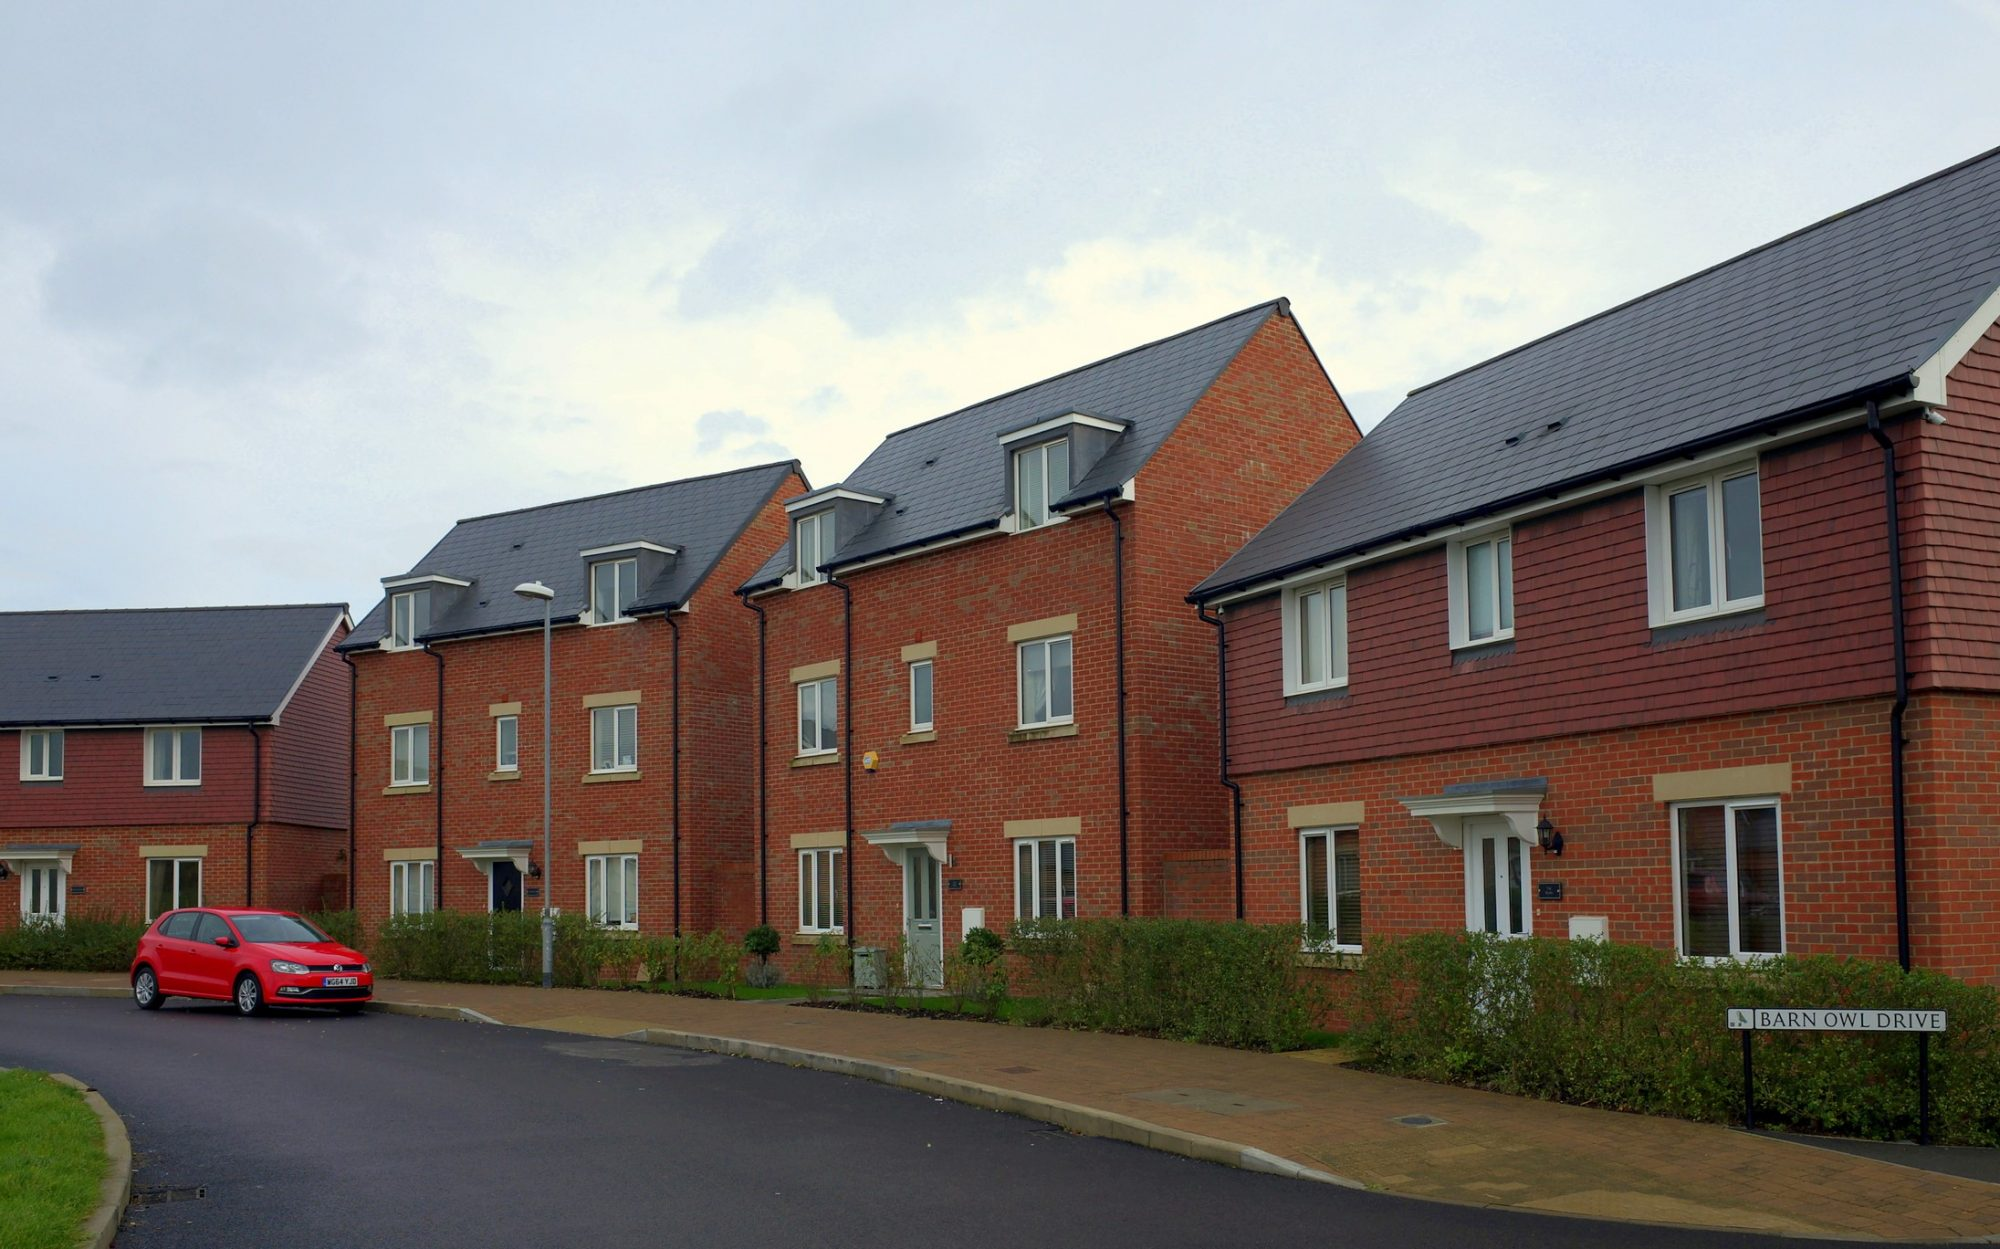 Survey reveals concerns about the quality of new build homes